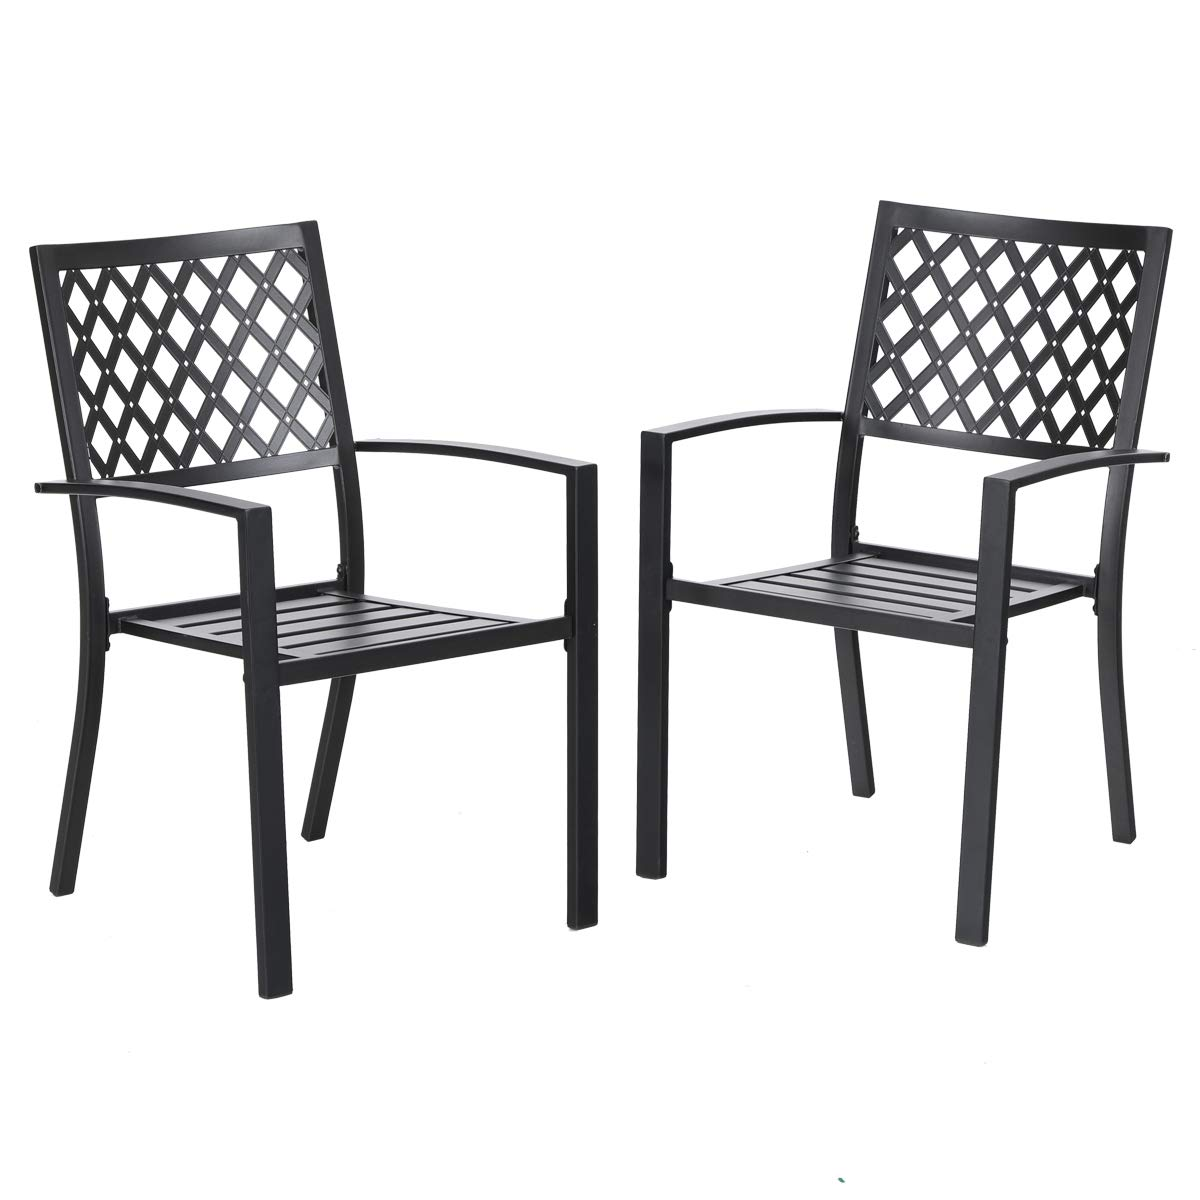 PHI VILLA 300lbs Wrought Iron Outdoor Patio Bistro Chairs with Armrest for Garden,Backyard - 2 Pack by PHI VILLA